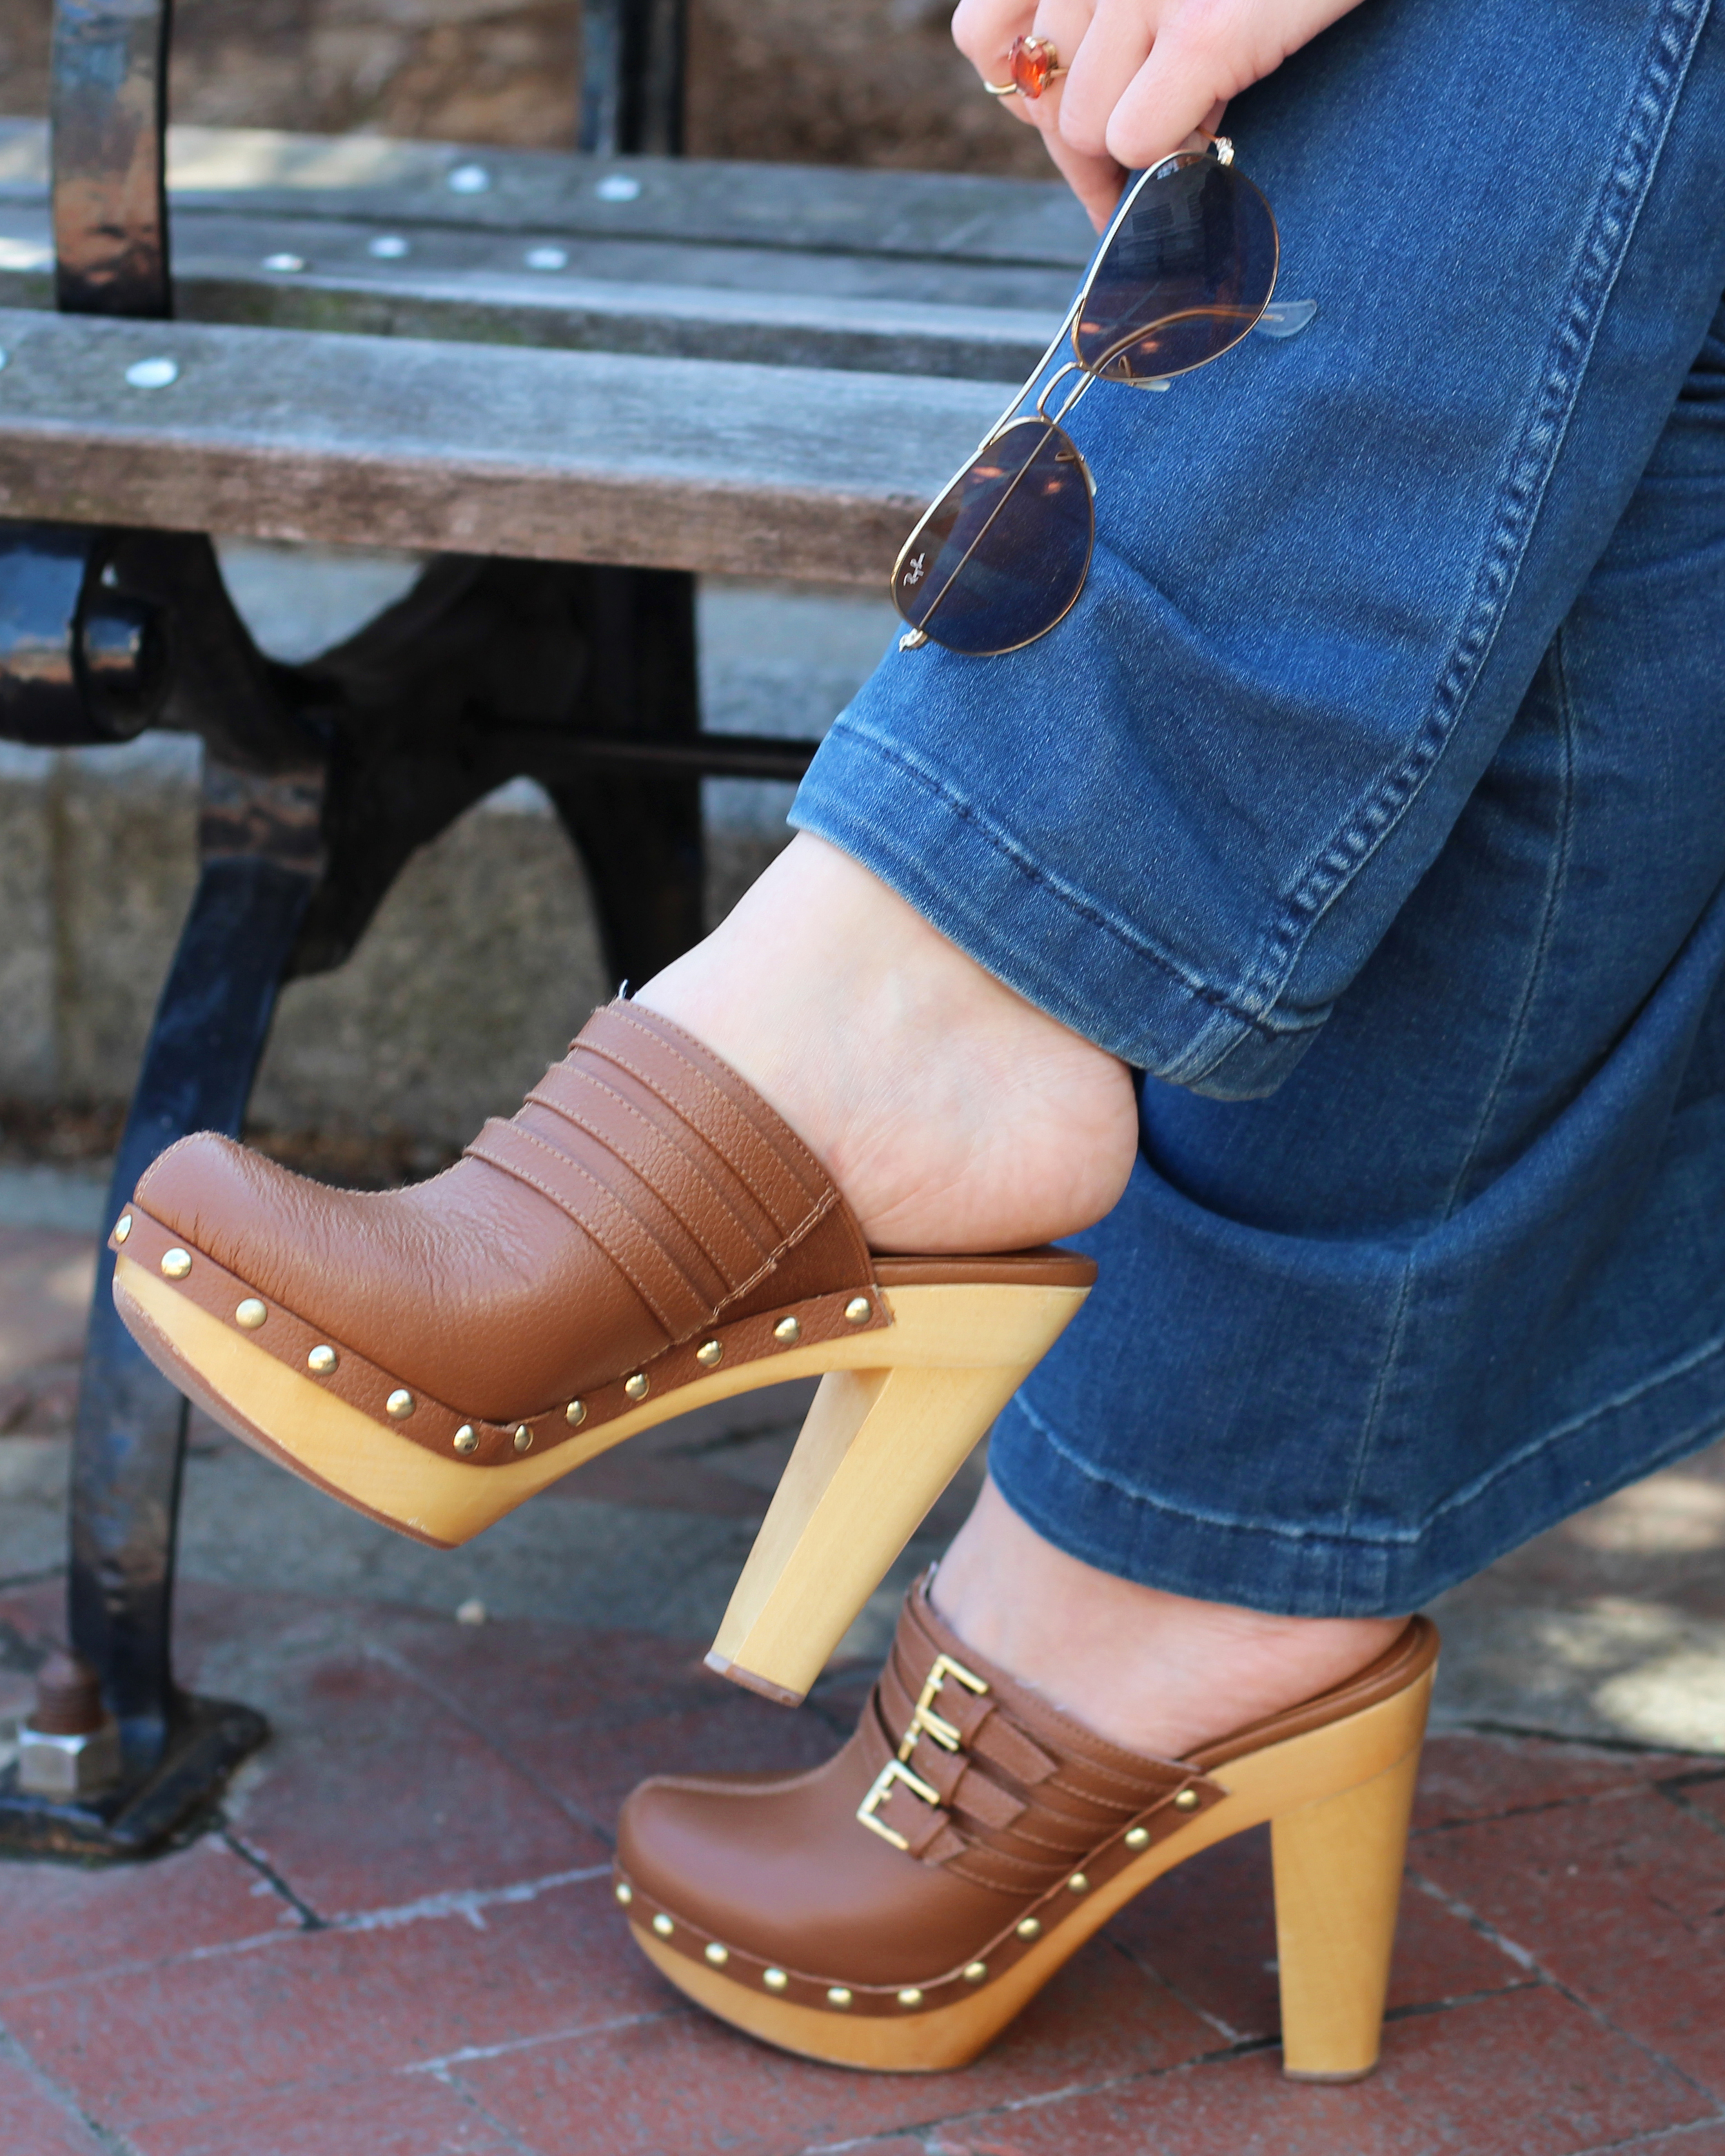 i think therefore i dress - 70's style trend - clogs